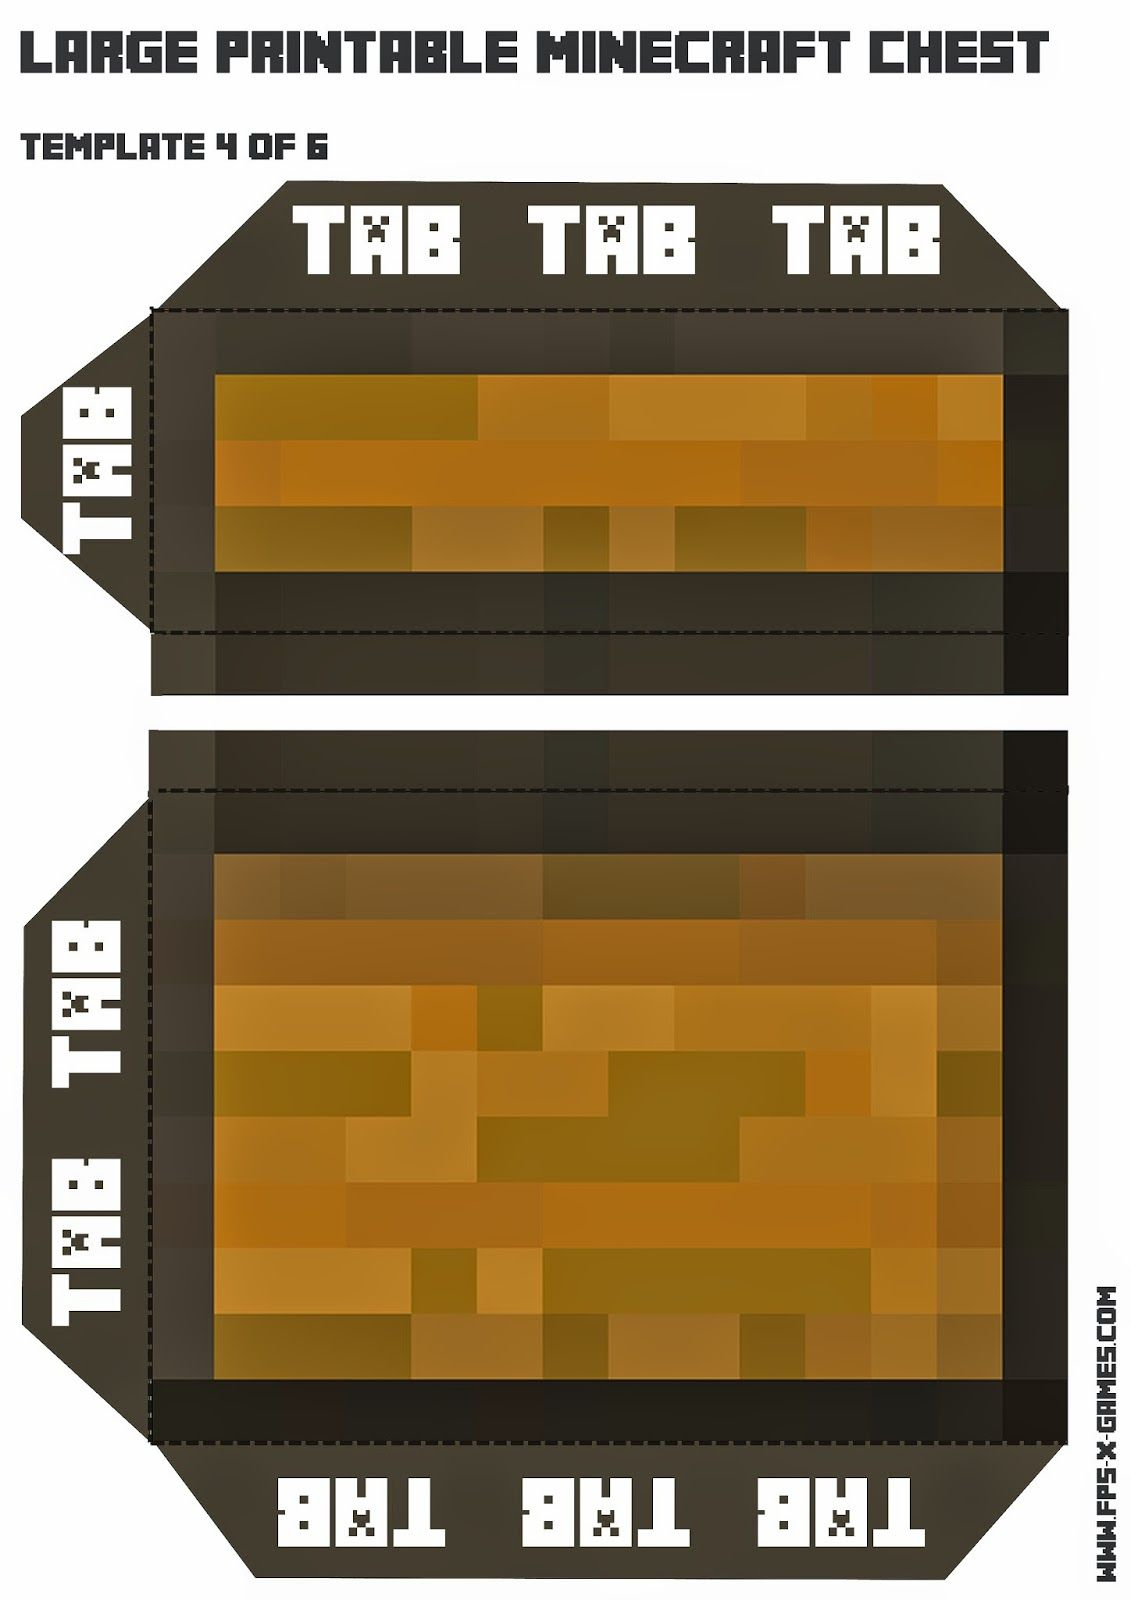 How To Create A Large Printable Minecraft Chest Fpsxgames Minecraft Printables Minecraft Printables Free Large Printable